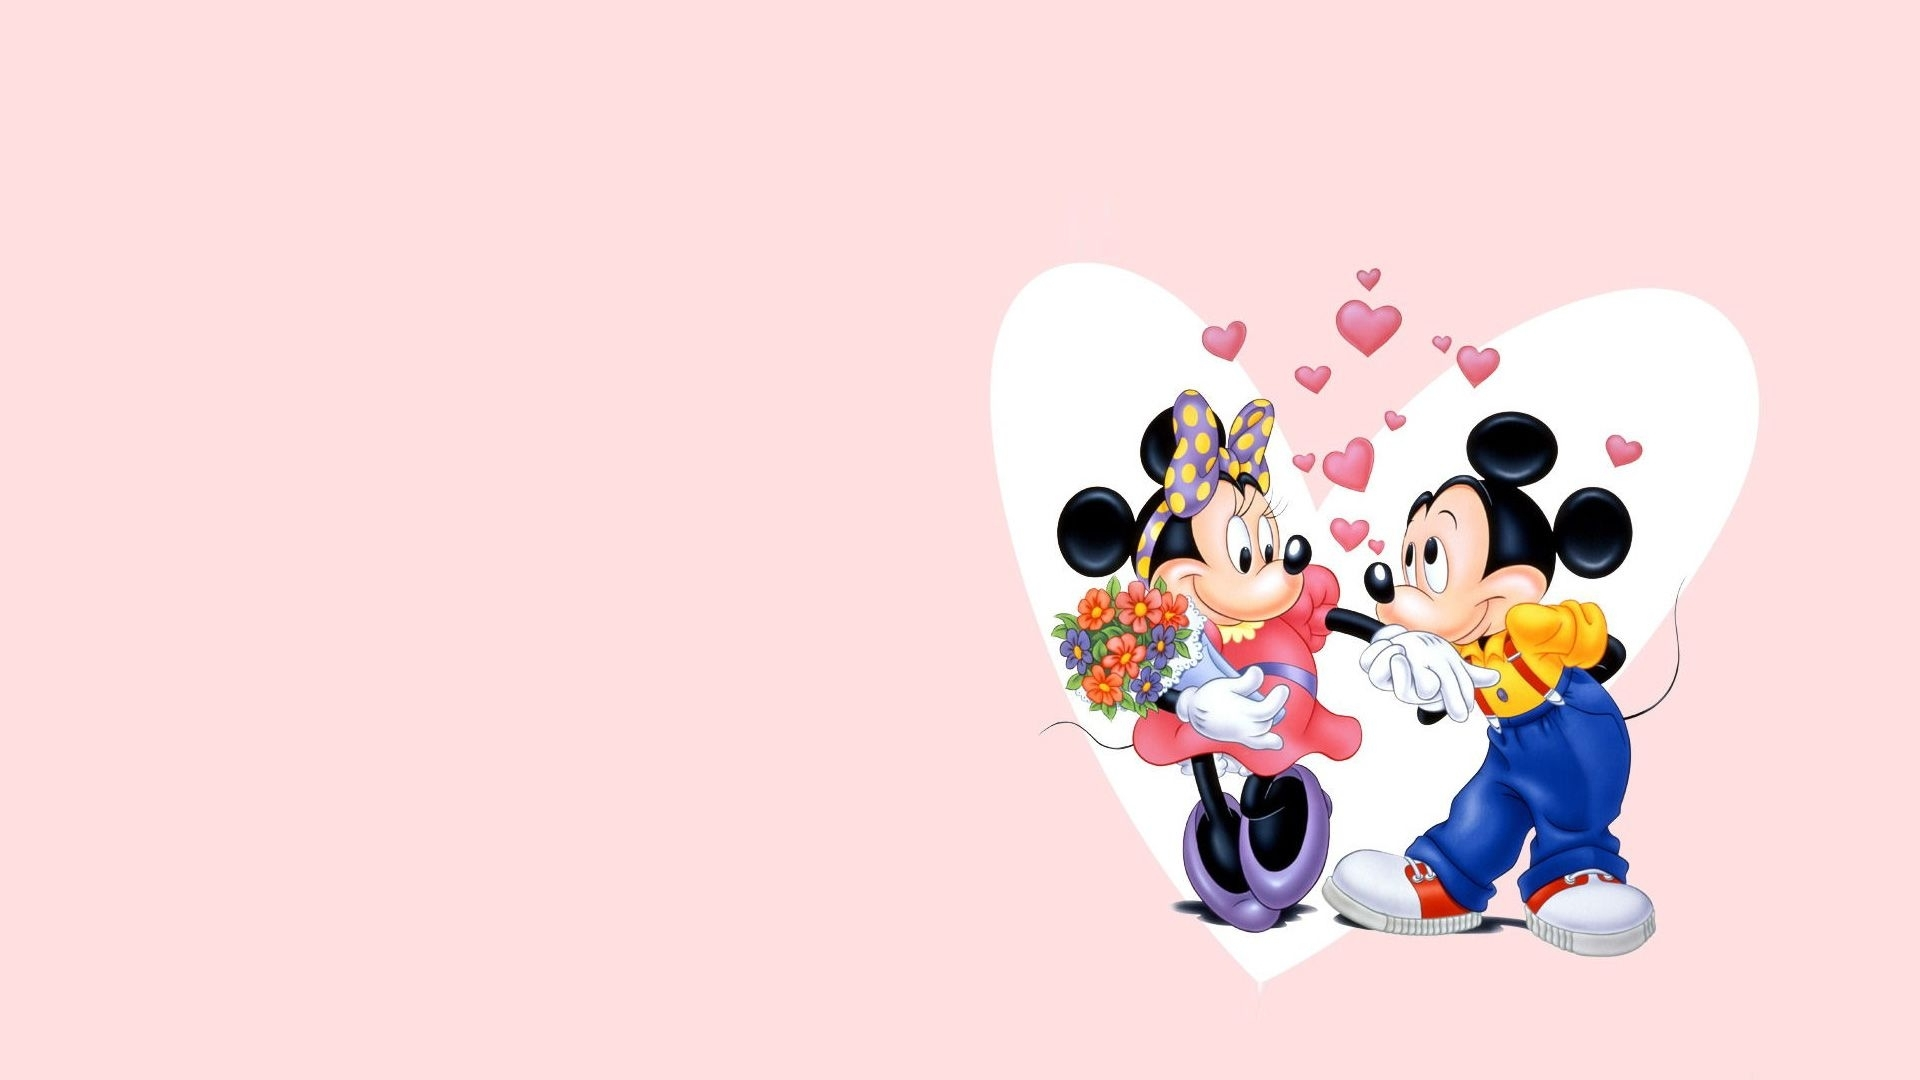 mickey and minnie mouse wallpaper hd 07988 - baltana